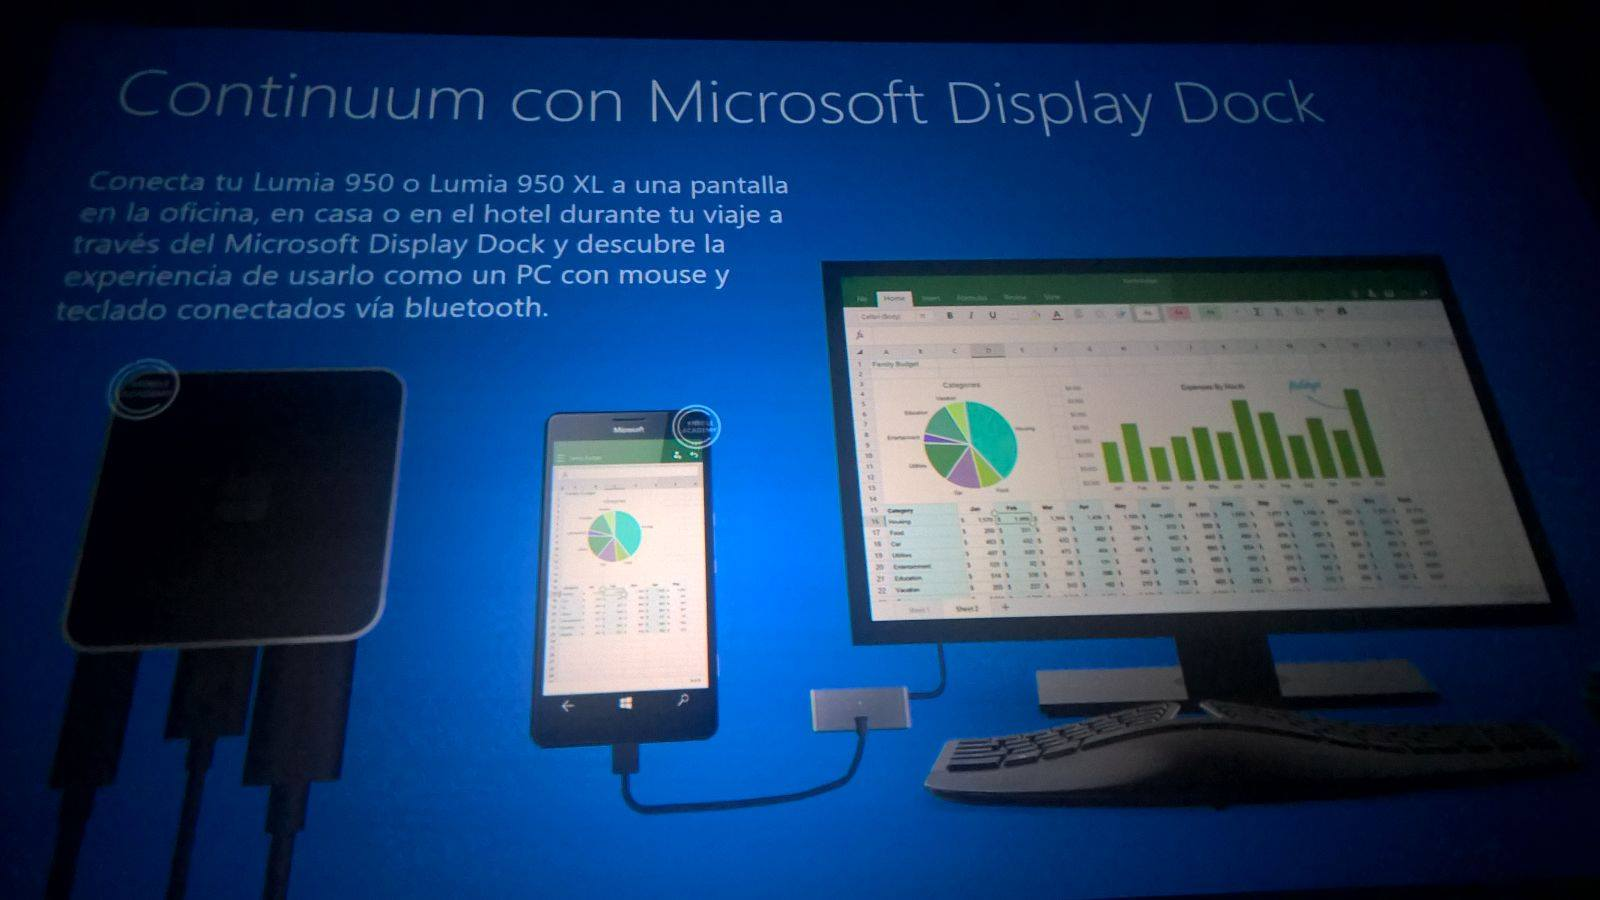 New pictures of the Lumia 950 XL and Lumia 950 leaked, confirms rumored specs 2